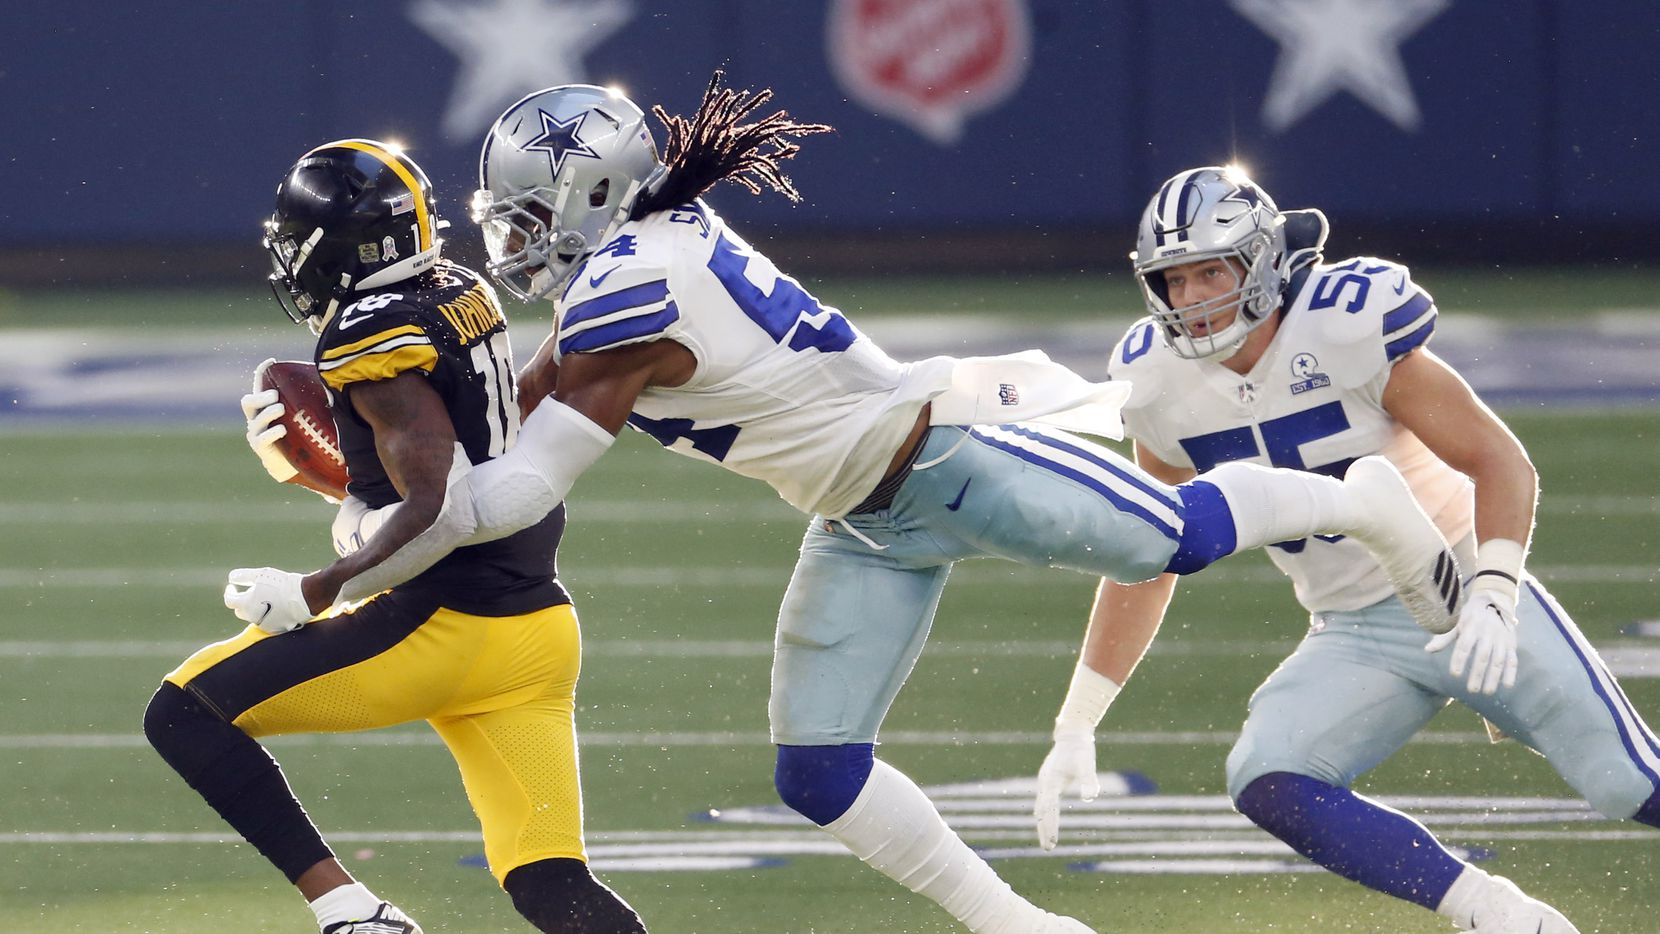 Dallas Cowboys middle linebacker Jaylon Smith (54) tackles Pittsburgh Steelers wide receiver Diontae Johnson (18) as Dallas Cowboys outside linebacker Leighton Vander Esch (55) closes in on the play during the second quarter of play at AT&T Stadium in Arlington, Texas on Sunday, November 8, 2020.